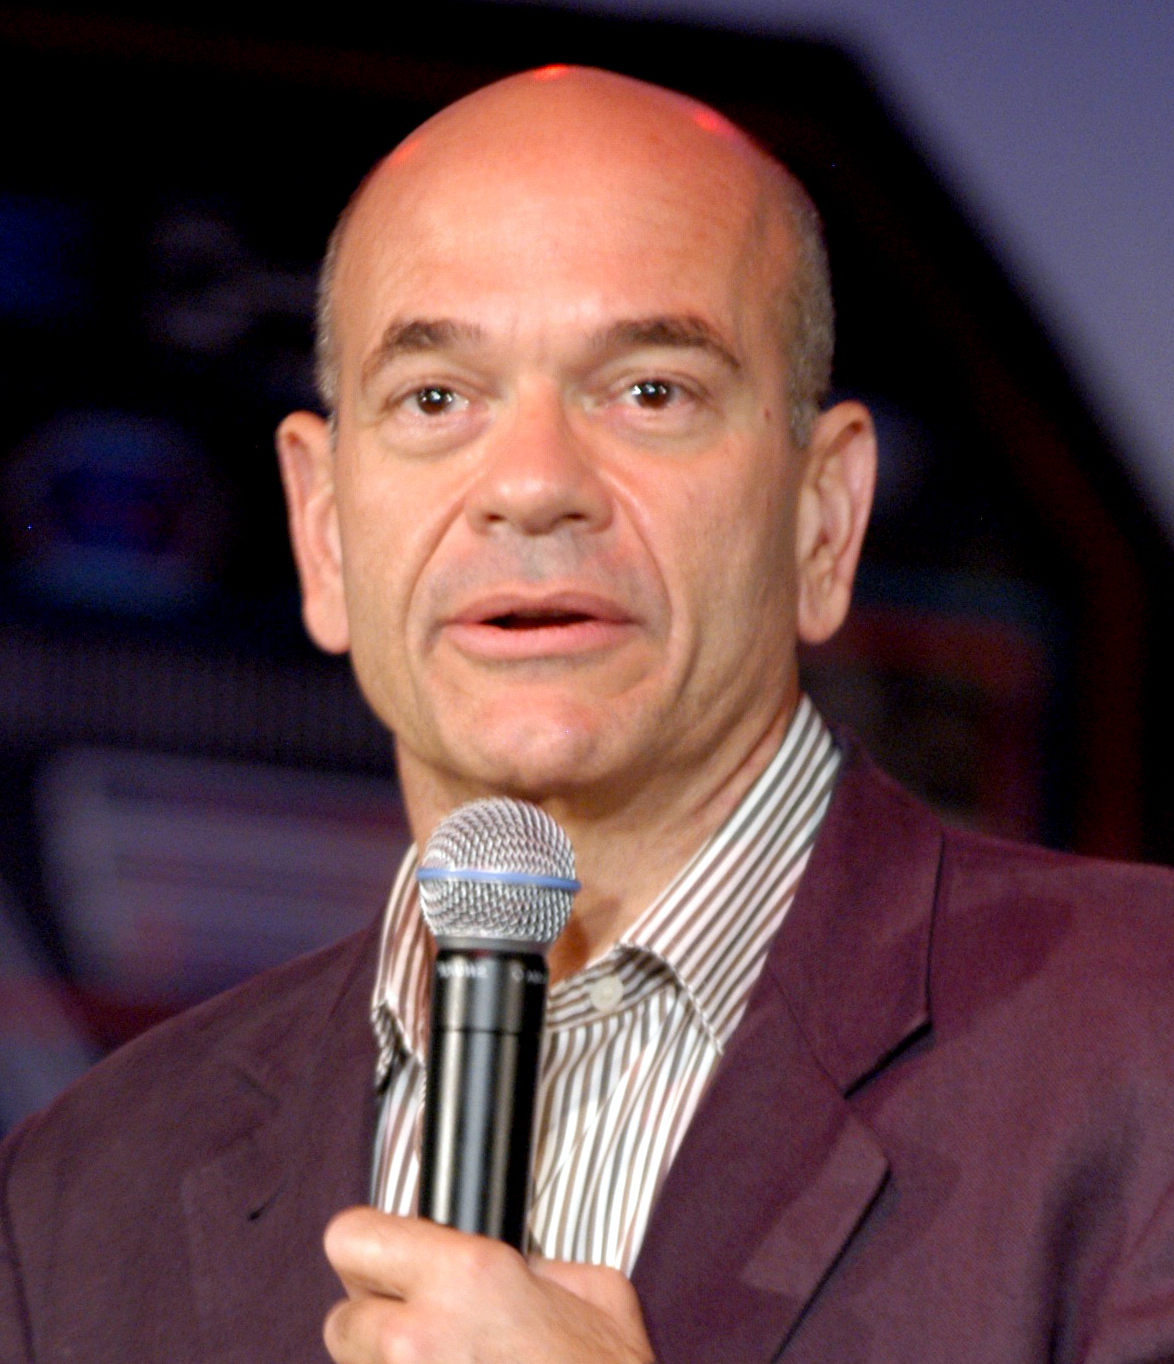 robert picardo black ops 3robert picardo west wing, robert picardo, robert picardo imdb, robert picardo wiki, robert picardo young, robert picardo opera, robert picardo net worth, robert picardo twitter, robert picardo black ops 3, robert picardo wife, robert picardo spricht deutsch, robert picardo legend, robert picardo stargate, robert picardo divorce, robert picardo bill nye, robert picardo supernatural, robert picardo 2015, robert picardo eye, robert picardo innerspace, robert picardo gremlins 2